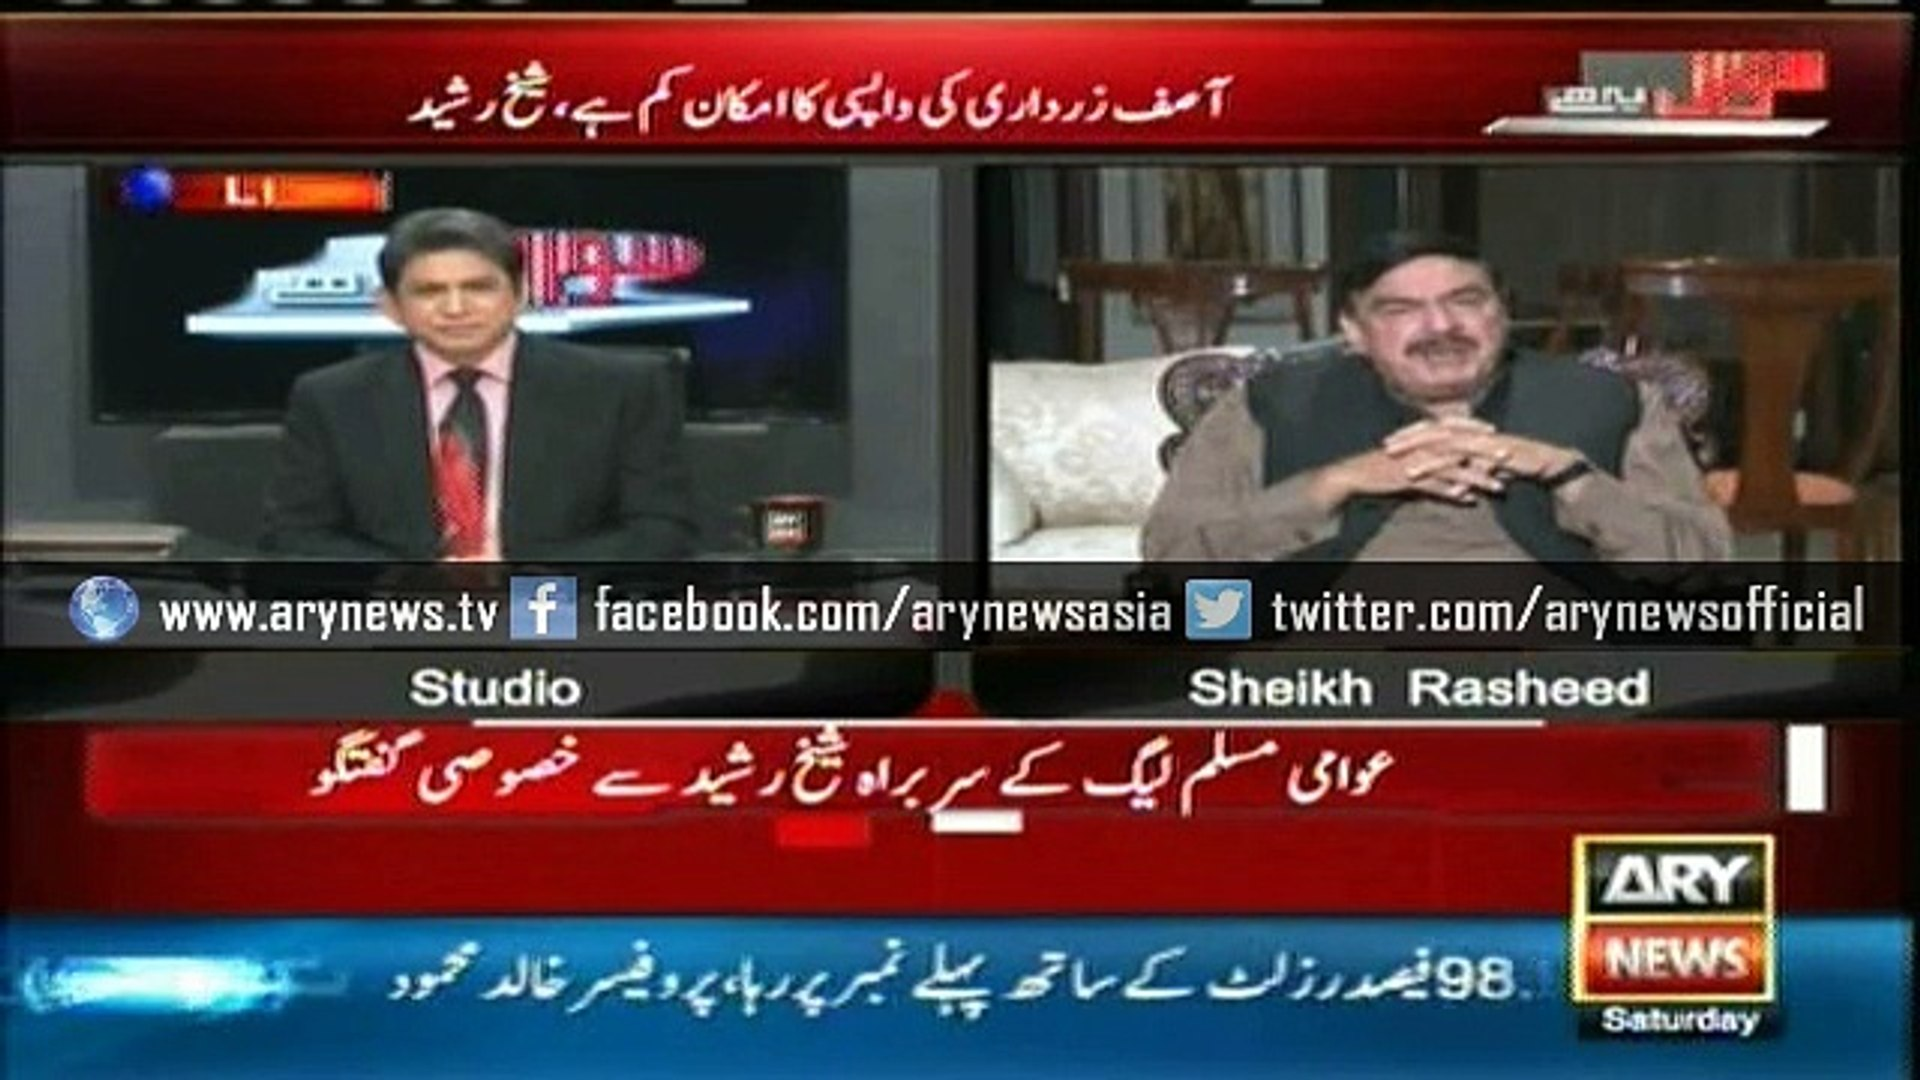 Rasheed sees Daesh in a position to wage attack in Pakistan